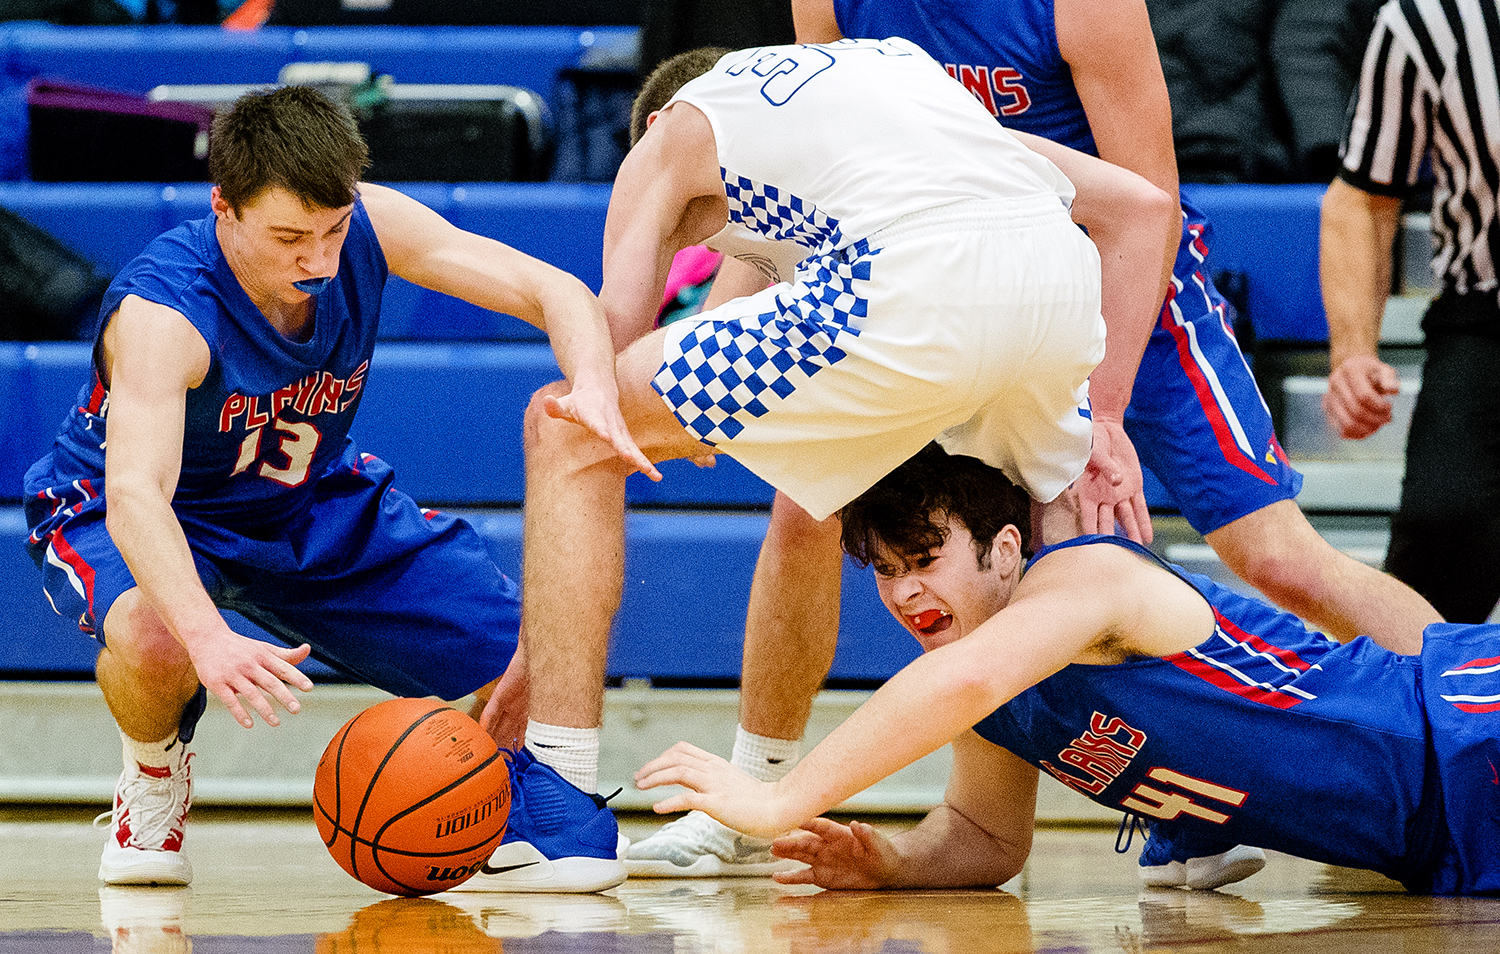 Pleasant Plains' Corgan Greer, left, Lutheran's Hank Hayer and Pleasant Plains' Chase Schmitt dive for a loose ball during the Sangamon County High School Basketball Tournament at Lincoln Land Community College Thursday, Jan. 10, 2019. [Ted Schurter/The State Journal-Register]